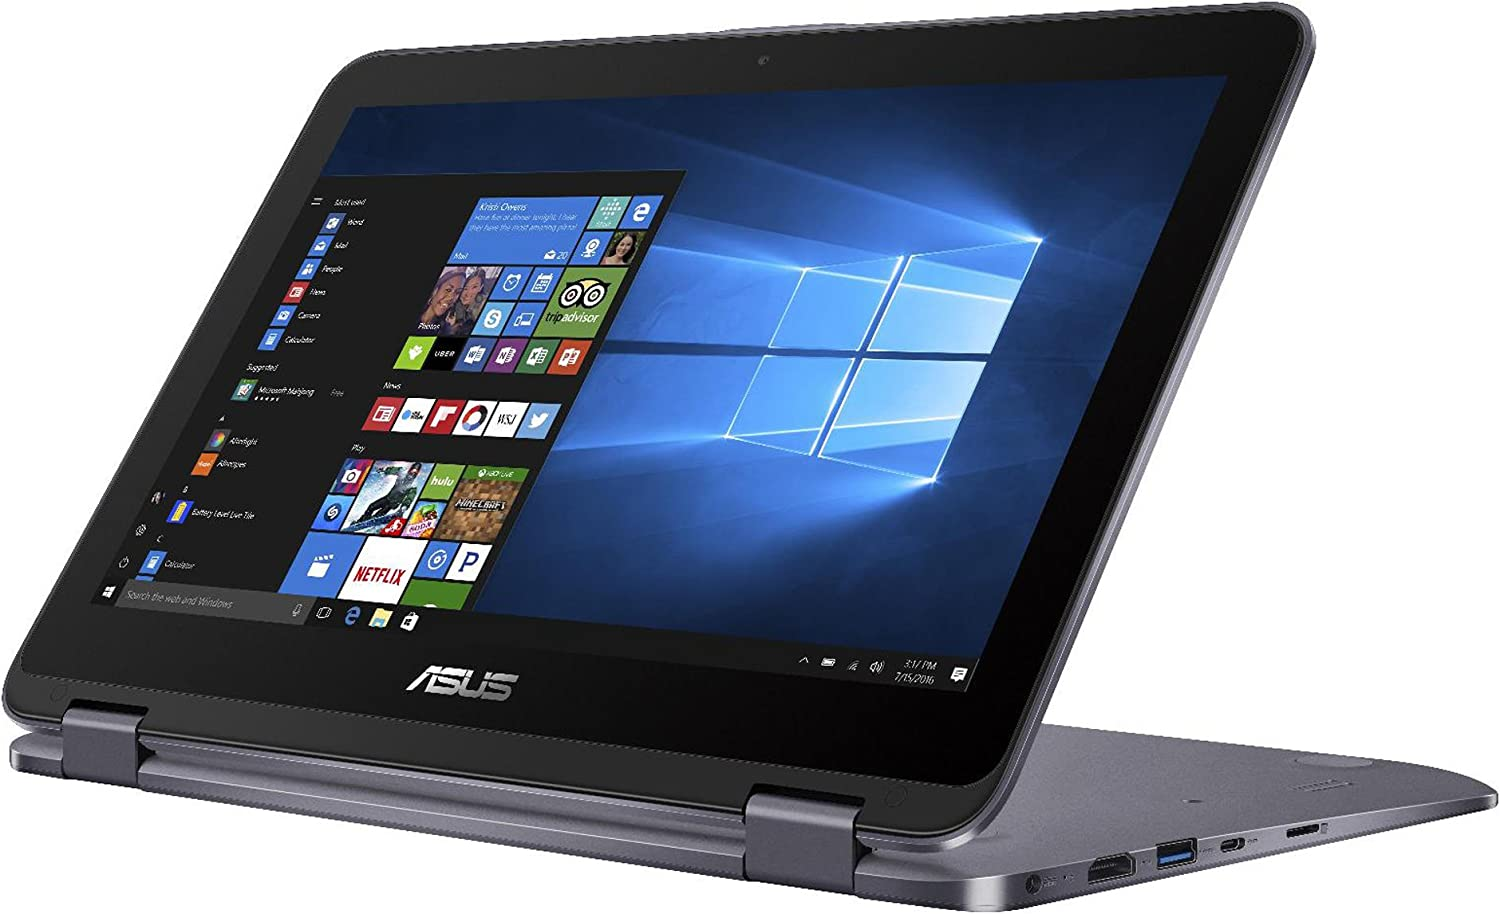 "ASUS Vivobook Flip 11.6"" HD 2-in-1 Convertible Touchscreen Laptop, Intel Celeron N3350 up to 2.4GHz, 4GB RAM, 500GB HDD, Finger Print Reader, ASUS Stylus Pen, 802.11ac, USB Type-C, Win 10"